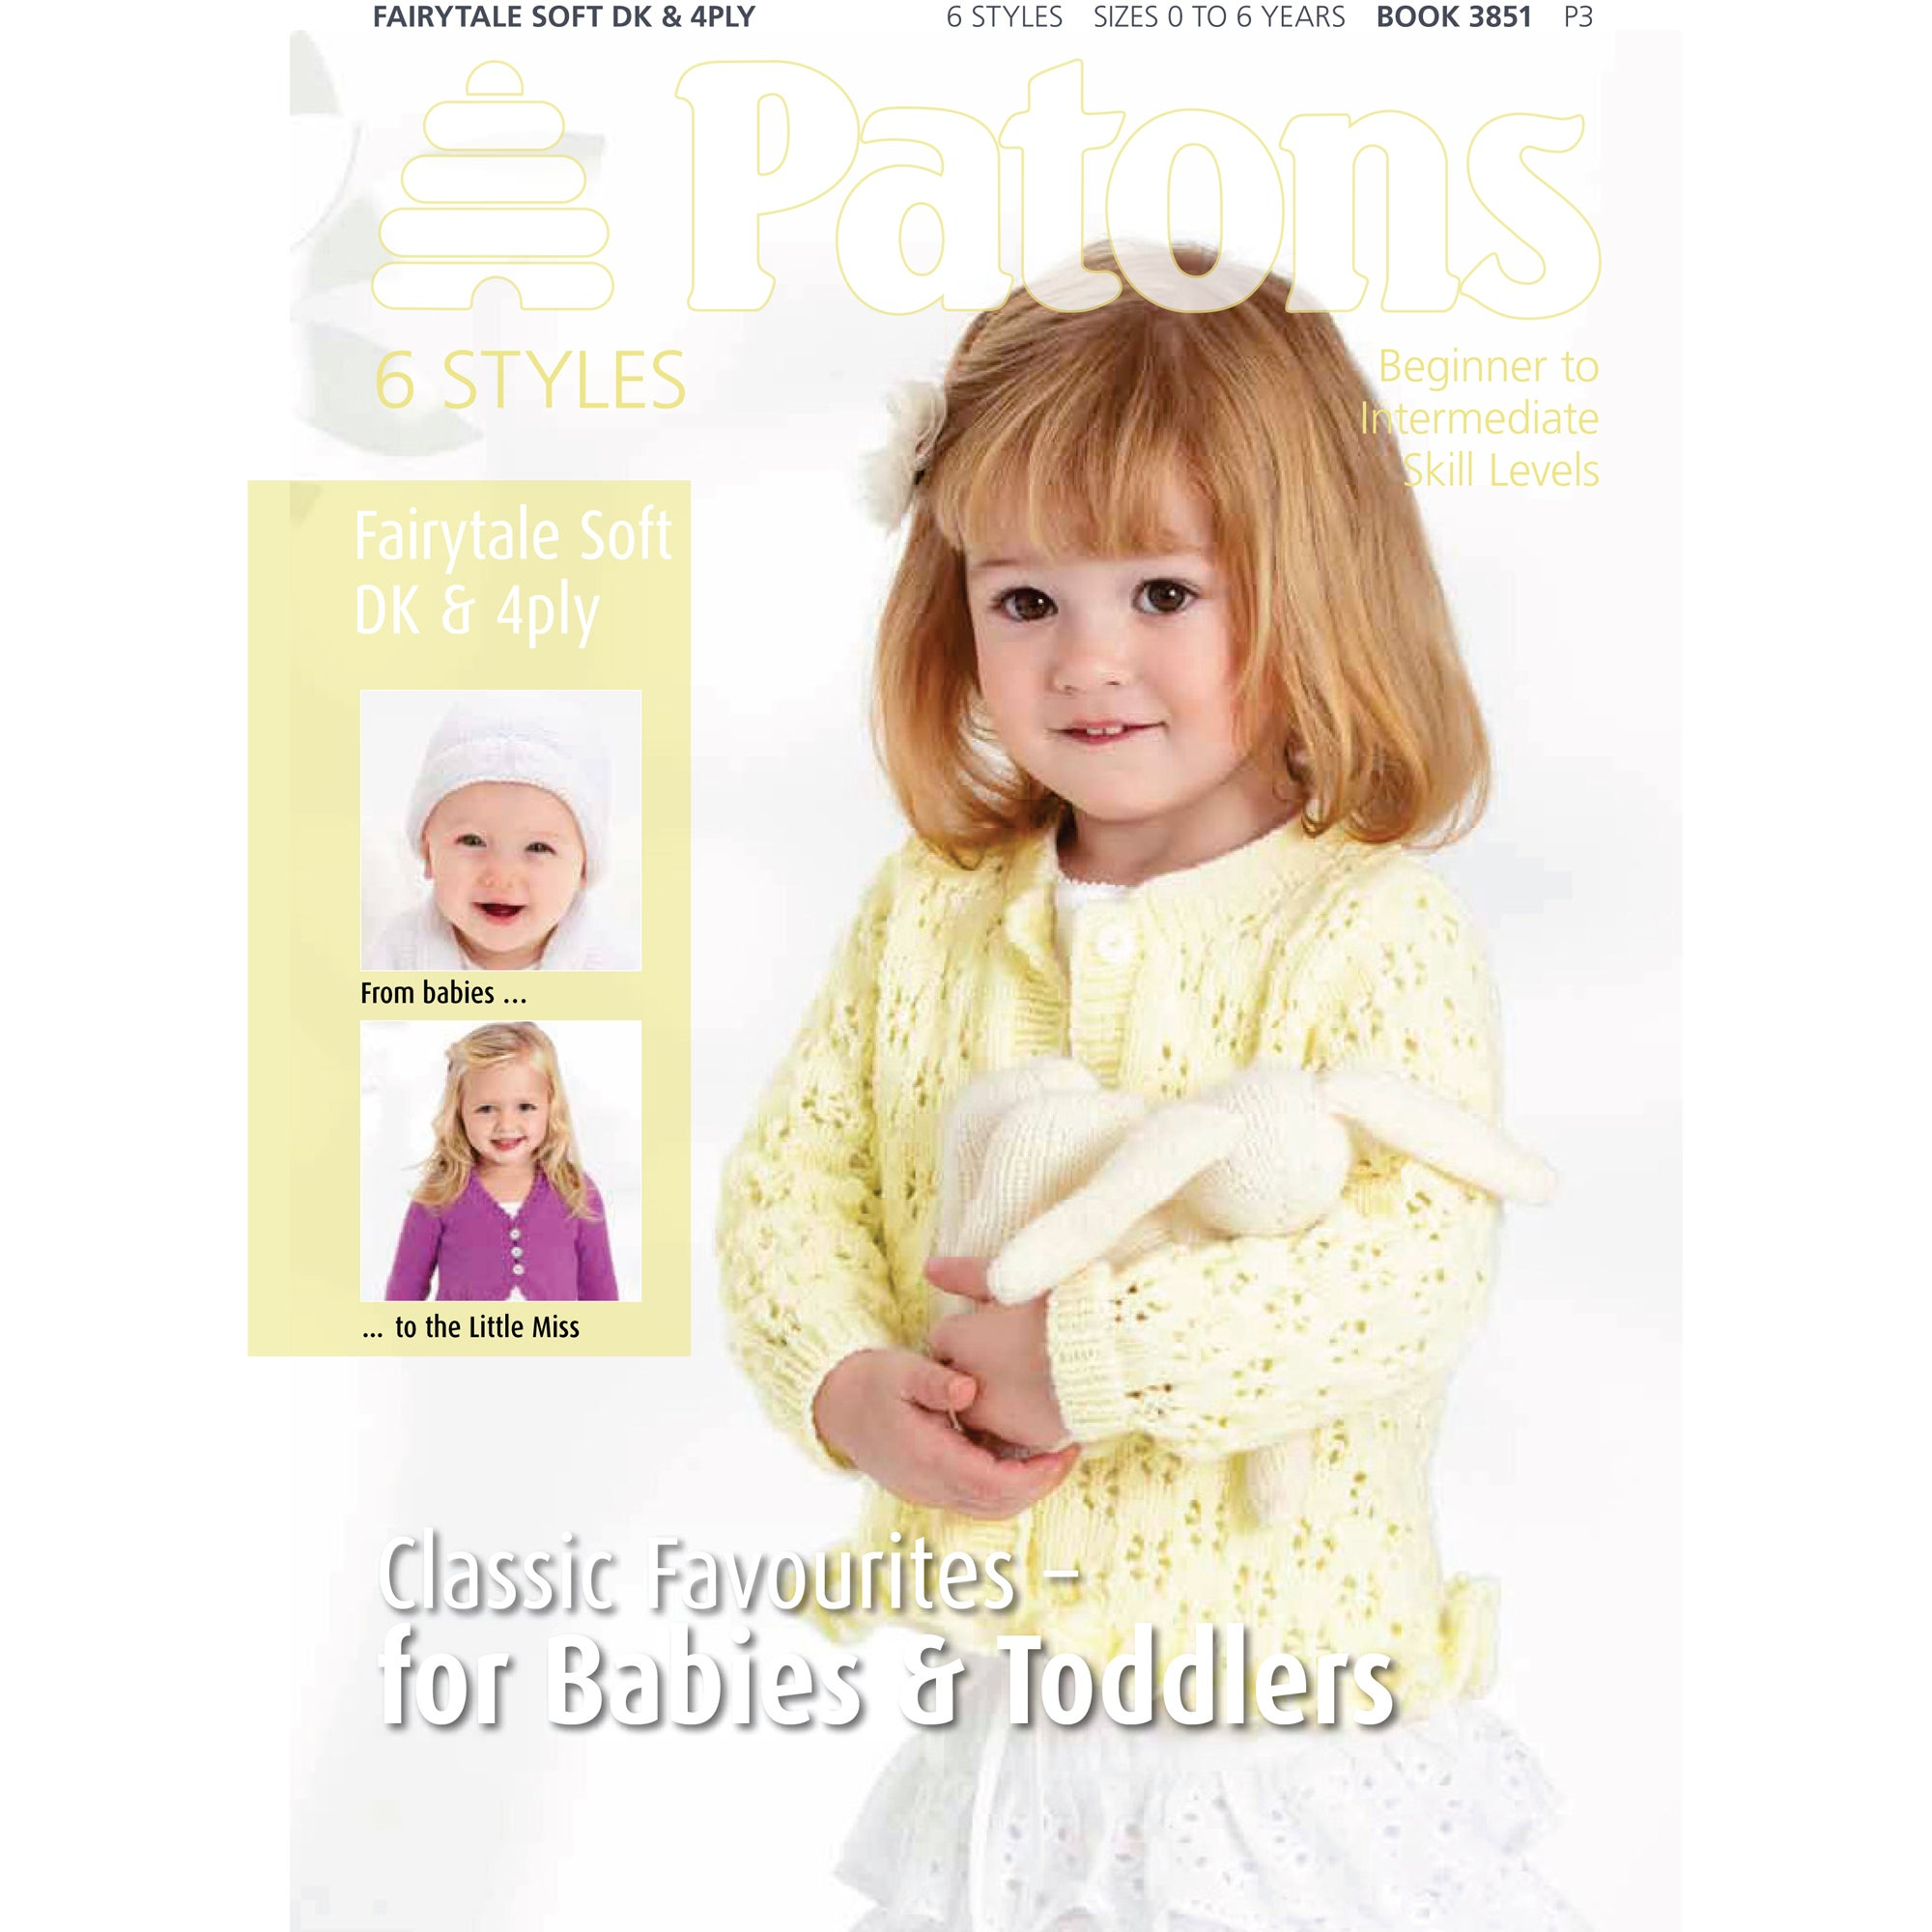 Cosy Baby Styles in Fairytale Soft